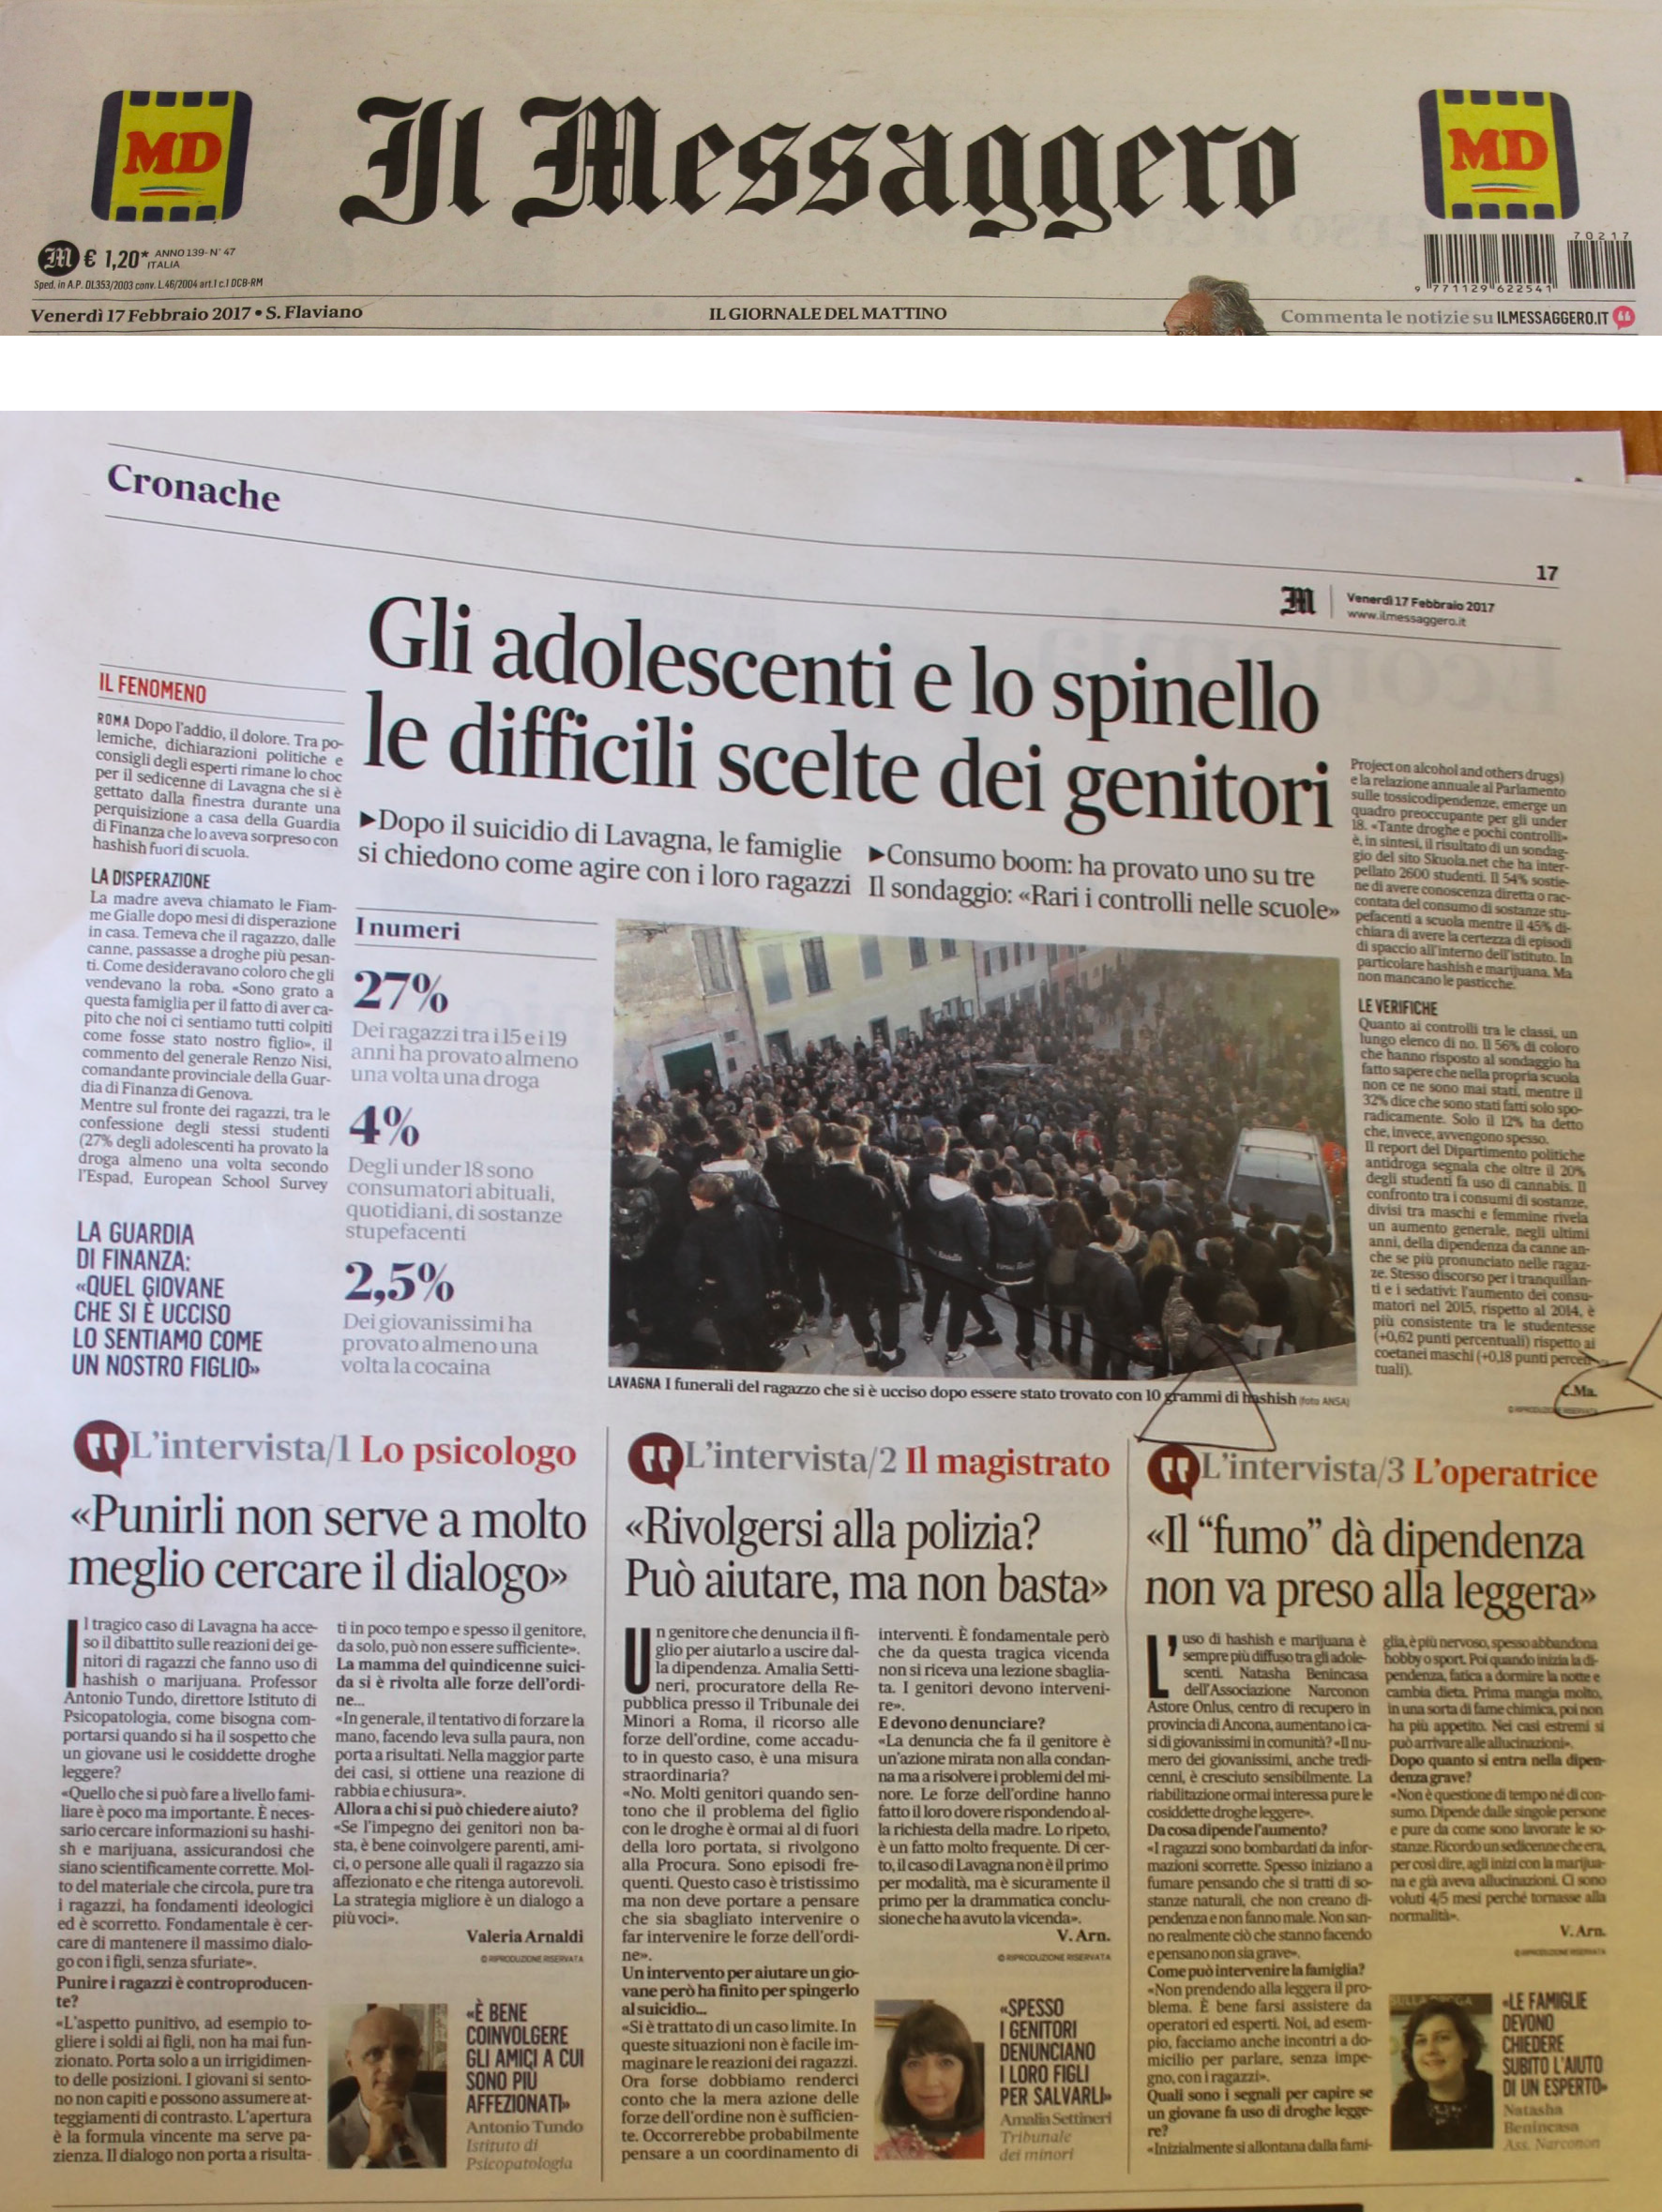 Intervista operatrice Narconon per il quotidiano il Messaggero